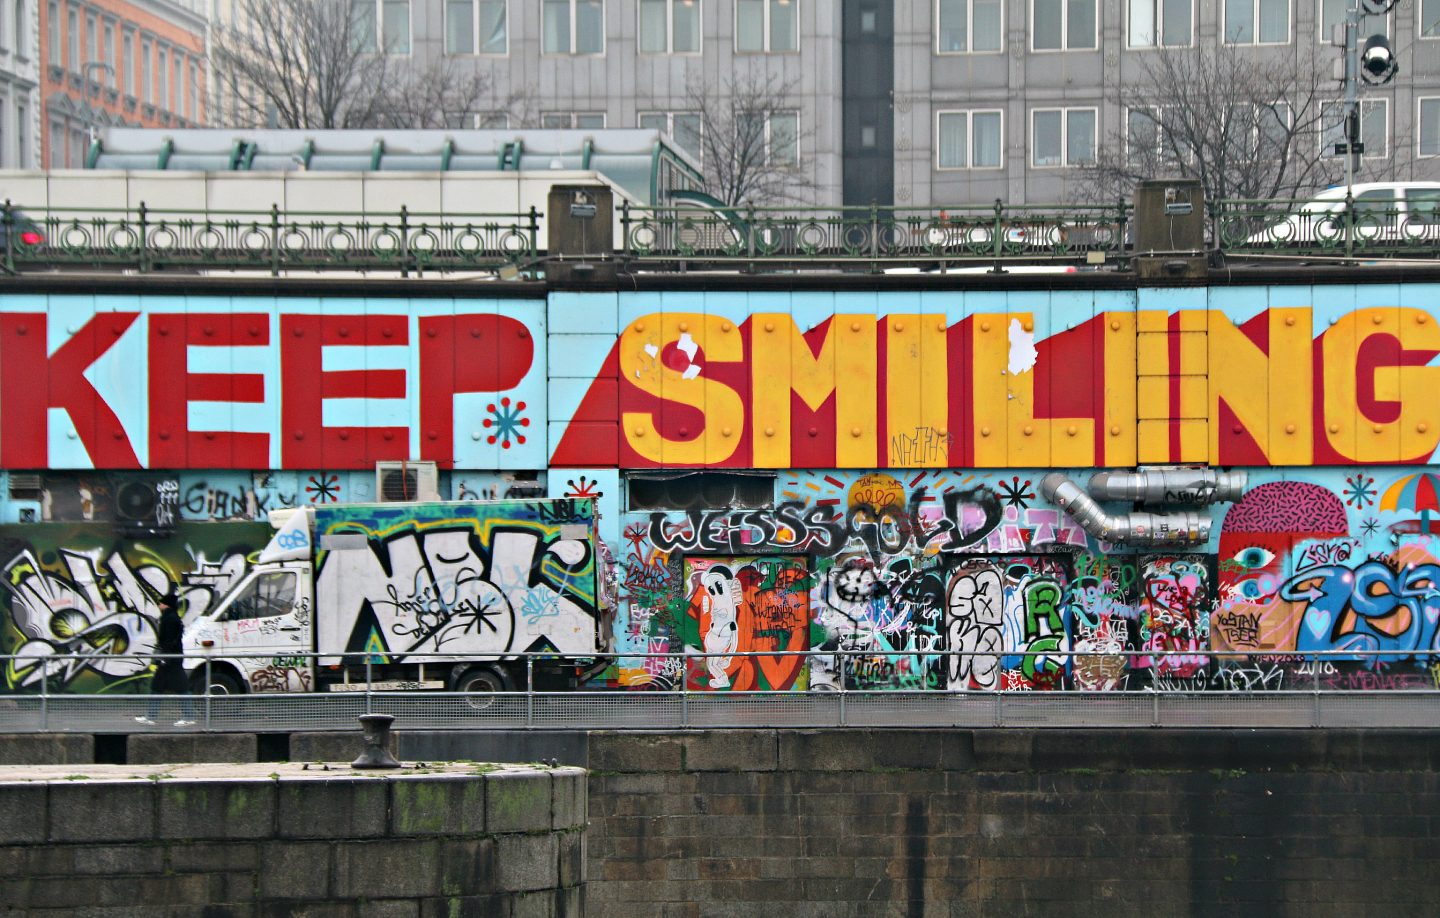 Vienna street art by the canal 23